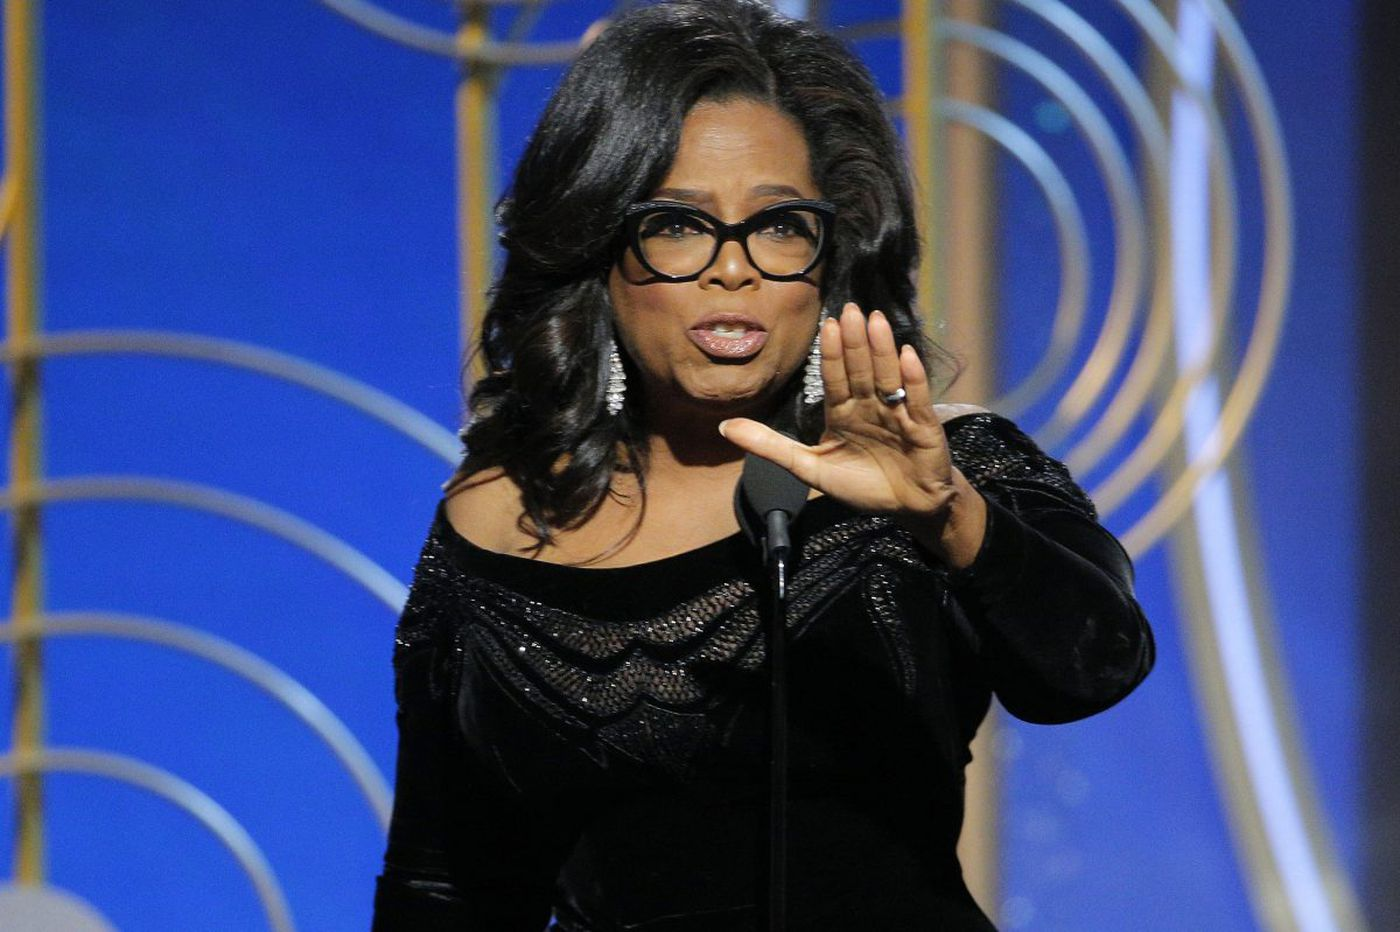 Oprah 2020 mania proves the American presidency is badly broken | Will Bunch